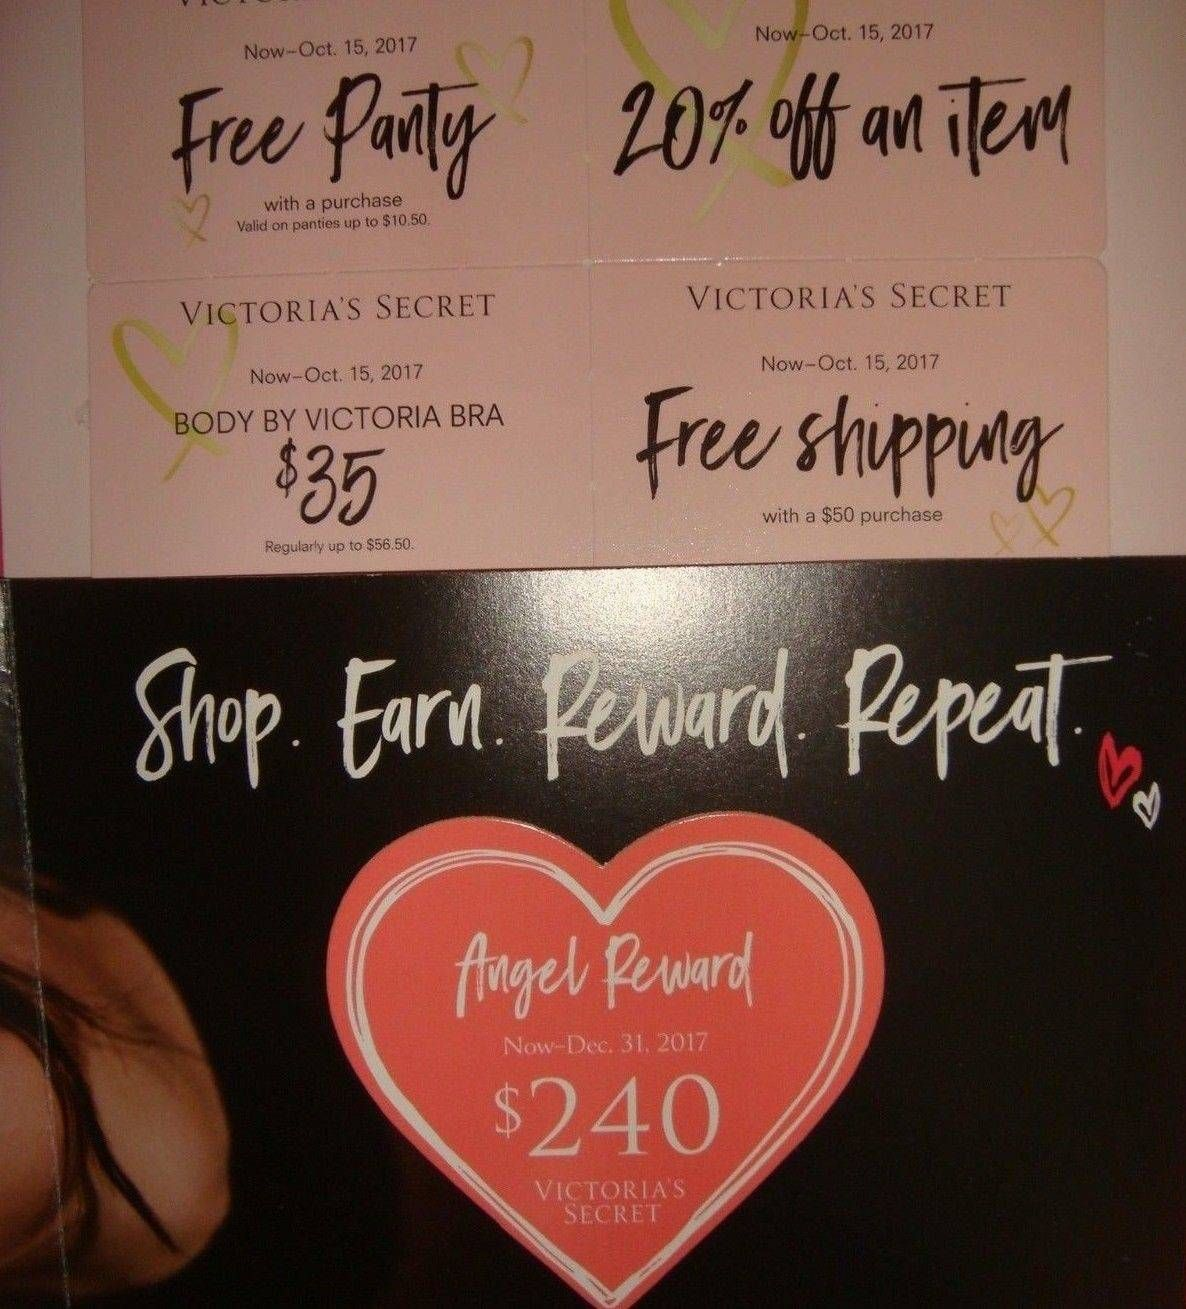 764b0ba9a1ff nice Victoria's Secret $240($480)ANGEL REWARD CARD+COUPONS NEW Use On-line